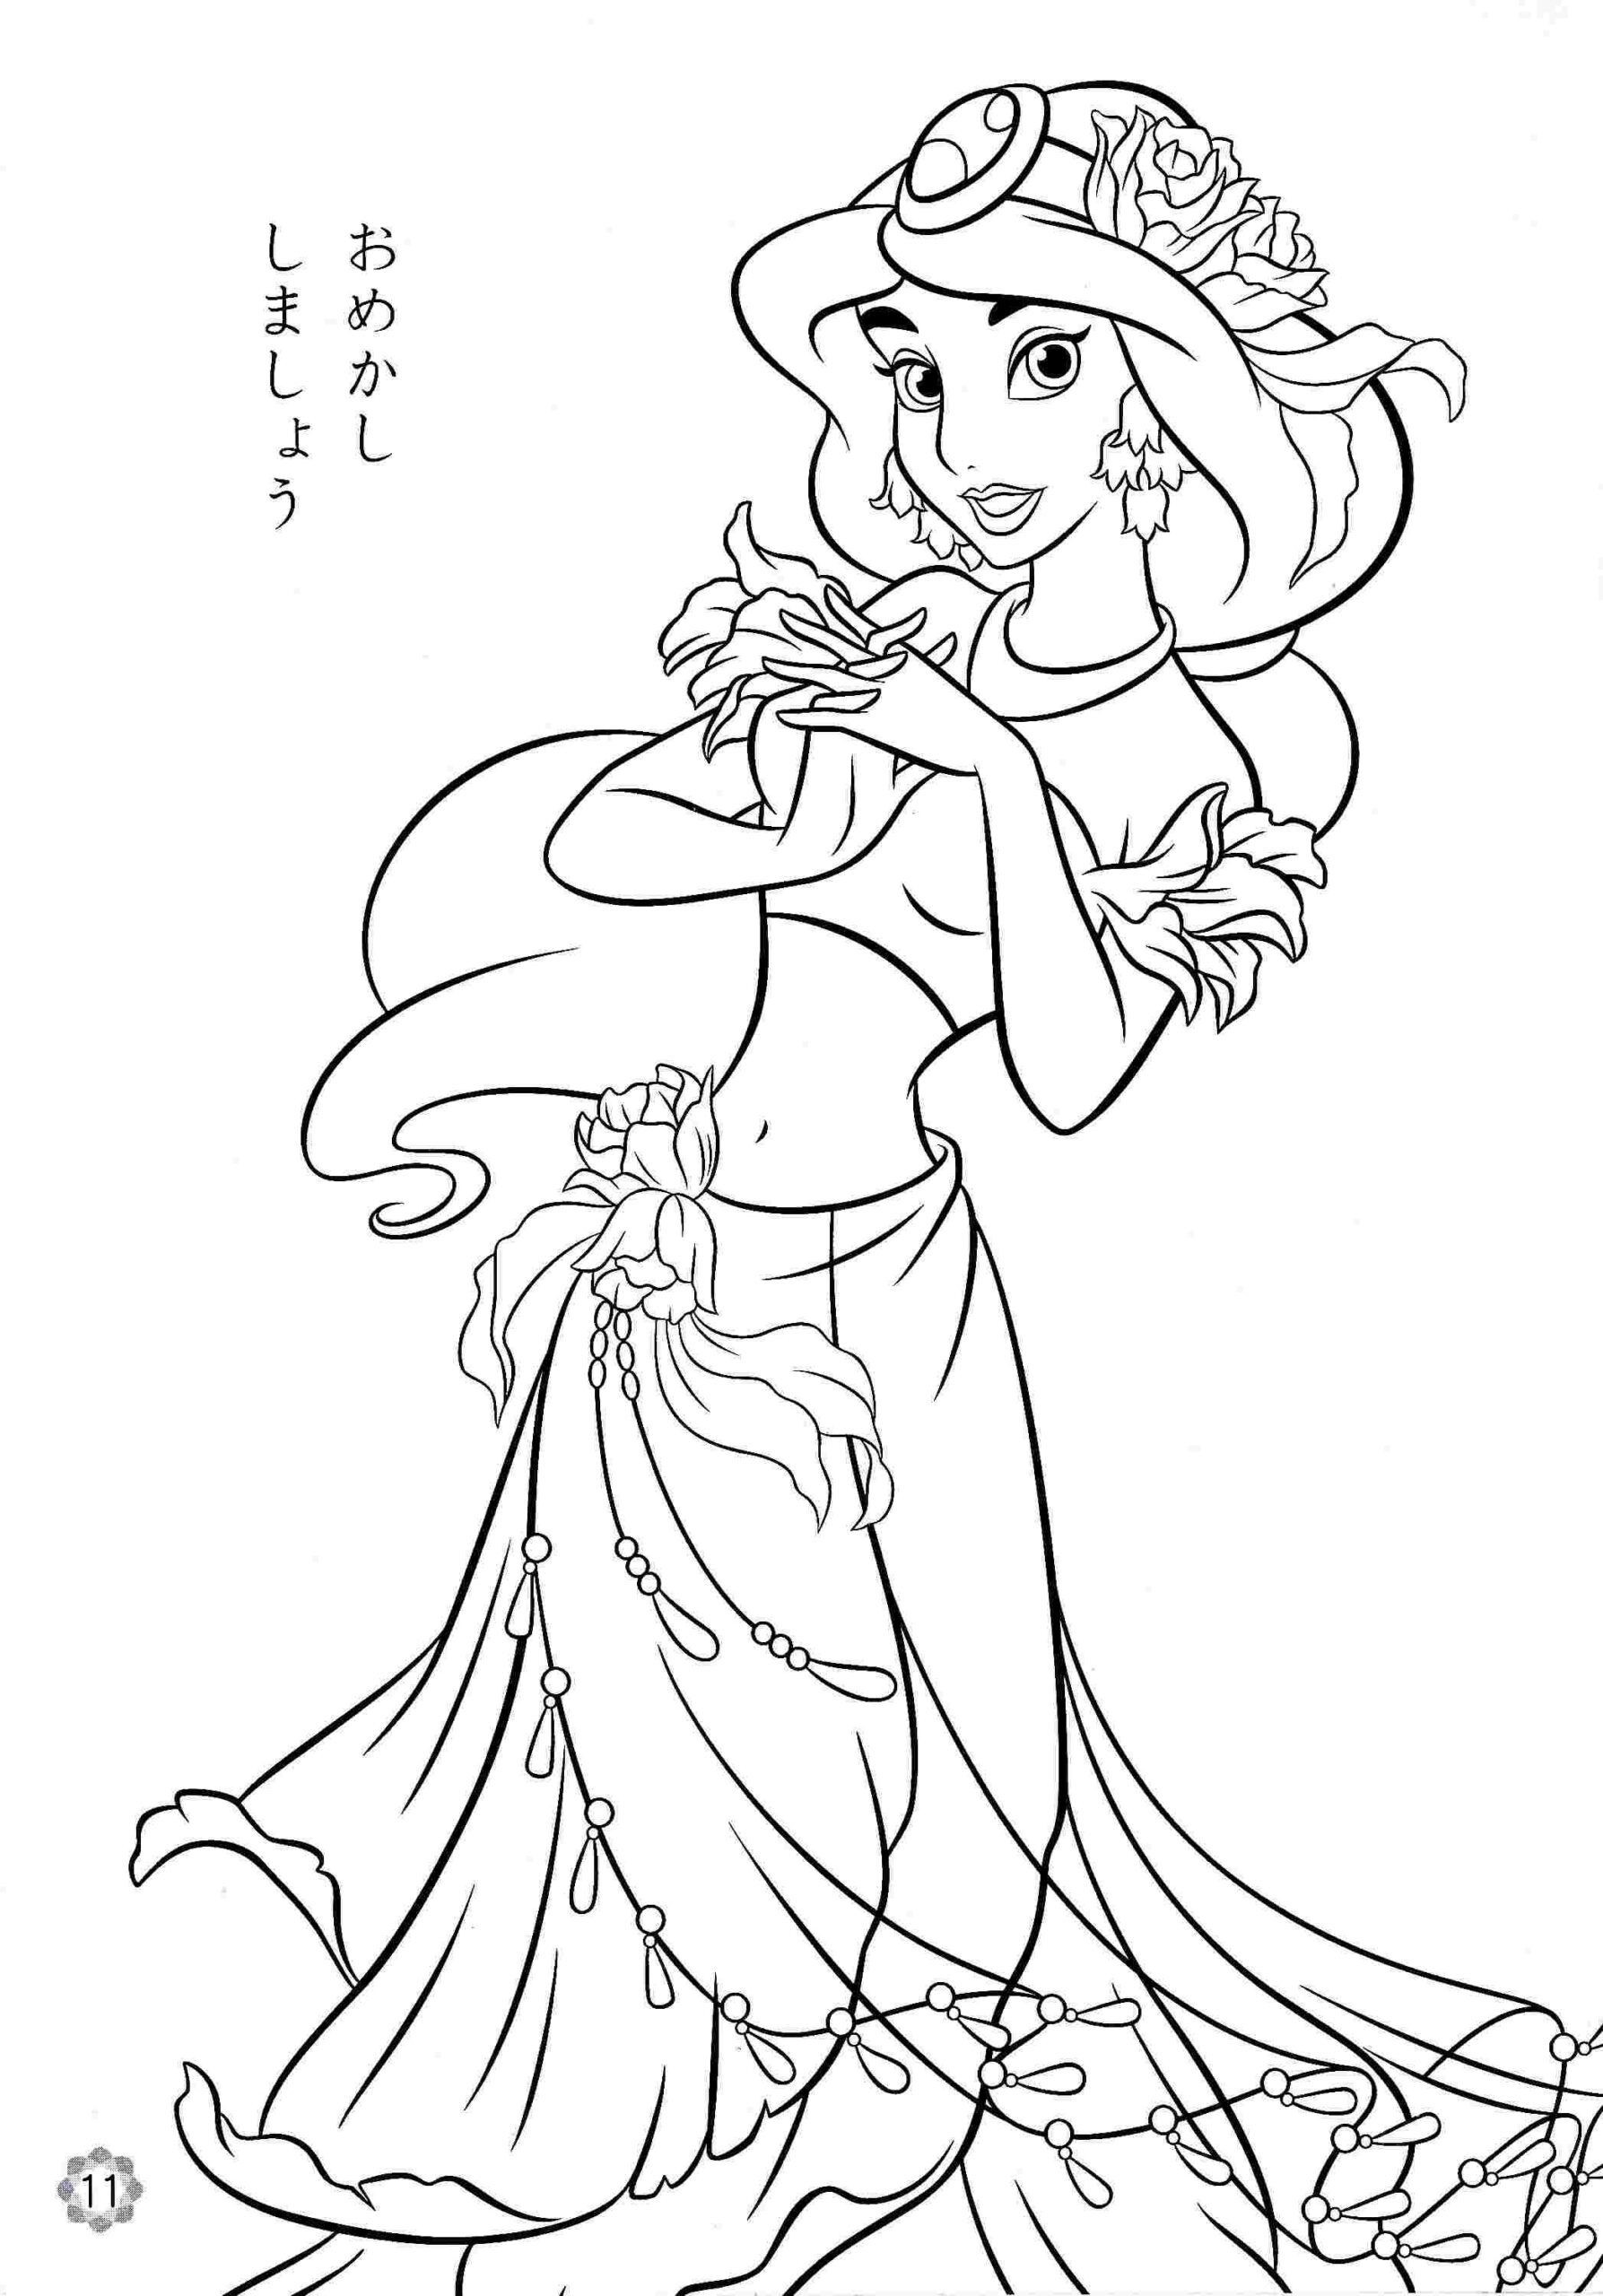 Disegni Da Colorare Walt Disney Principesse Nuovo Baby Jasmine Coloring Pages Guard Disney Princess Coloring Pages Mermaid Coloring Pages Disney Coloring Pages